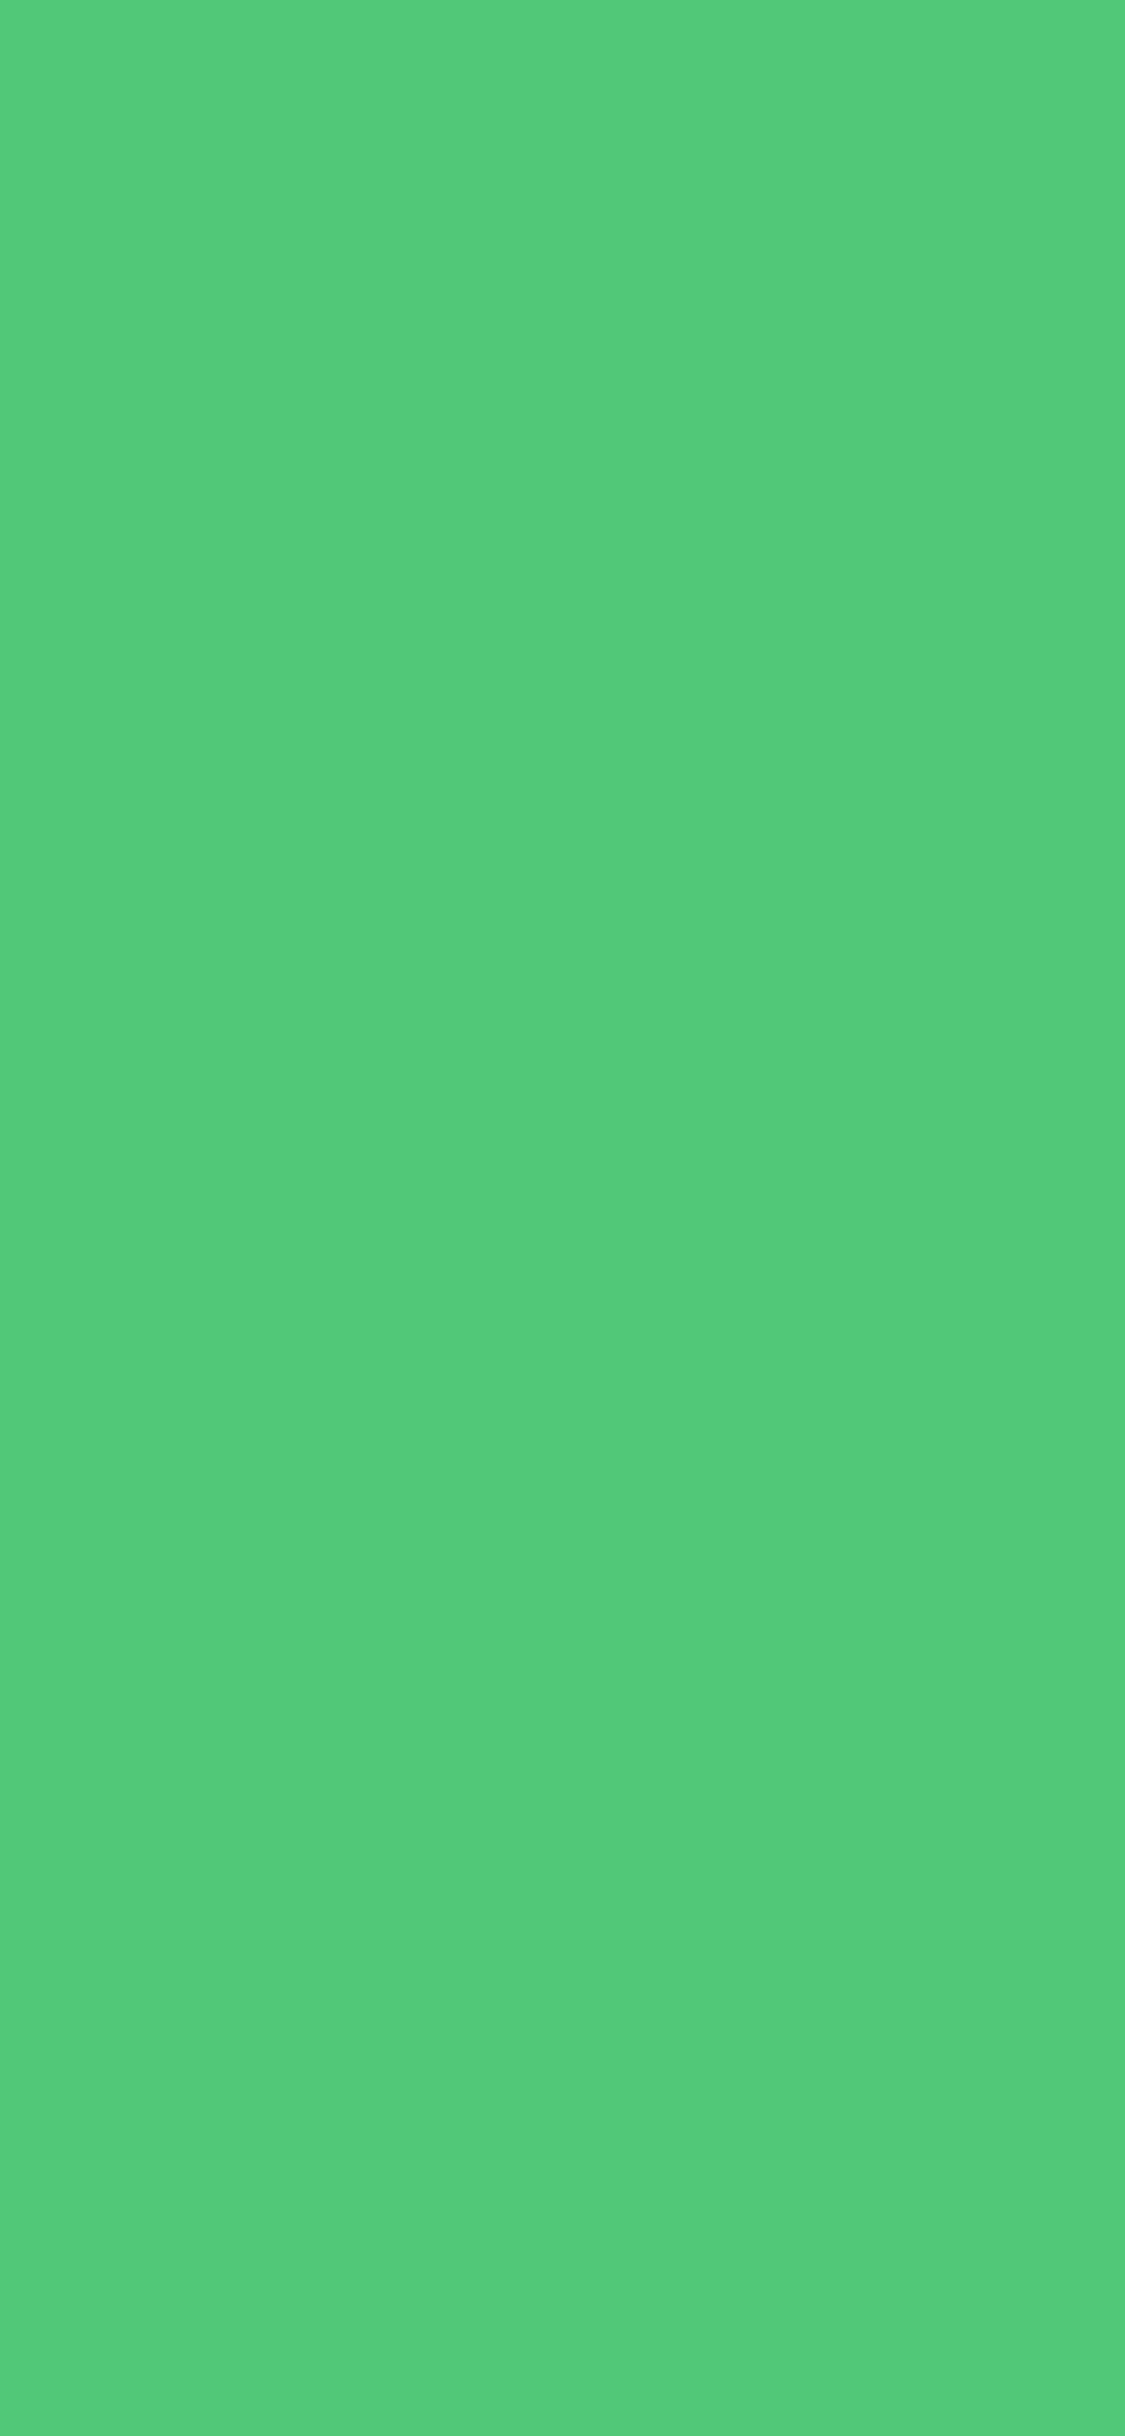 1125x2436 Paris Green Solid Color Background